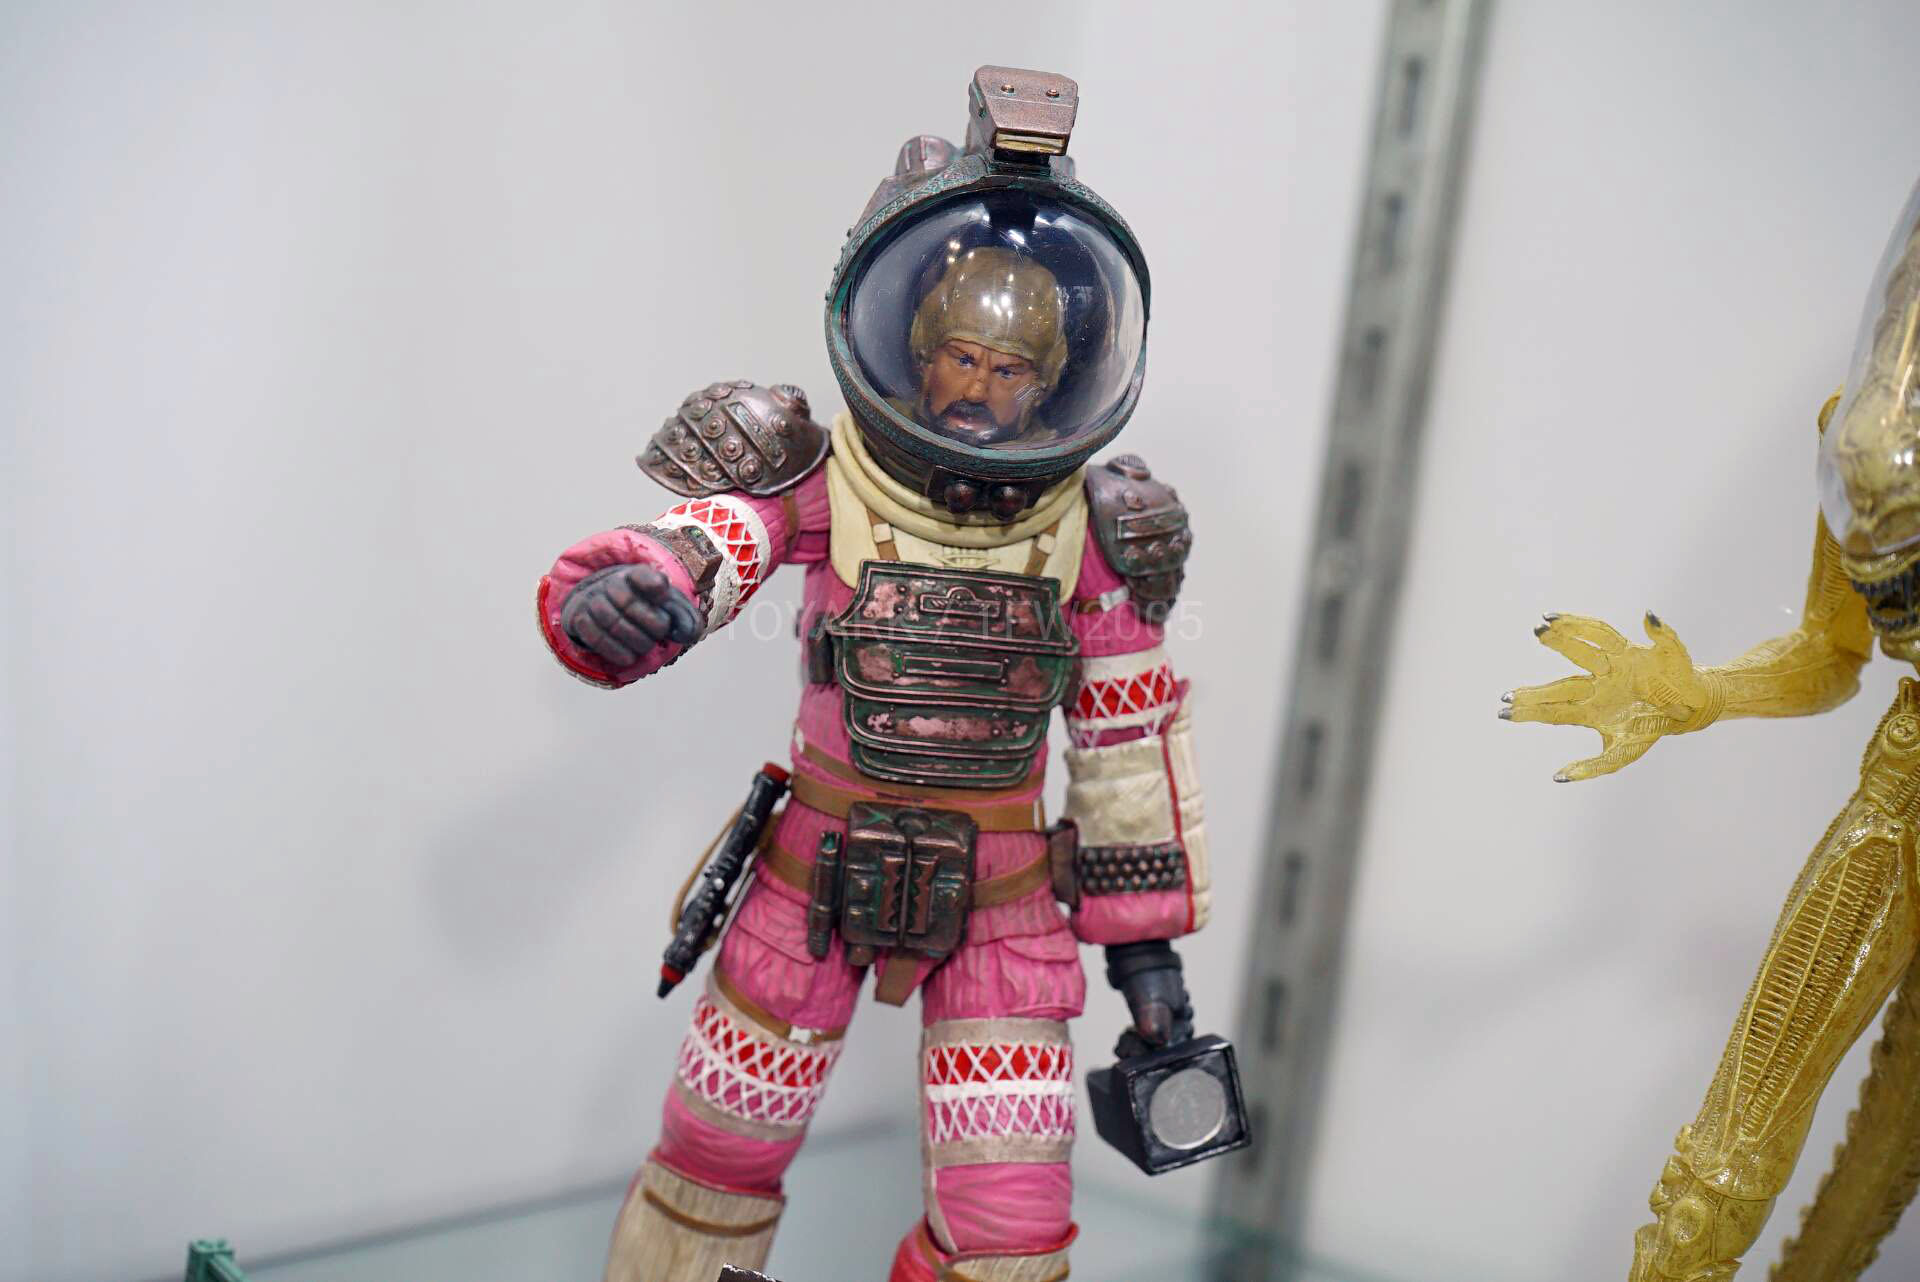 Toy-Fair-2020-NECA-Alien-and-Predator-021.jpg